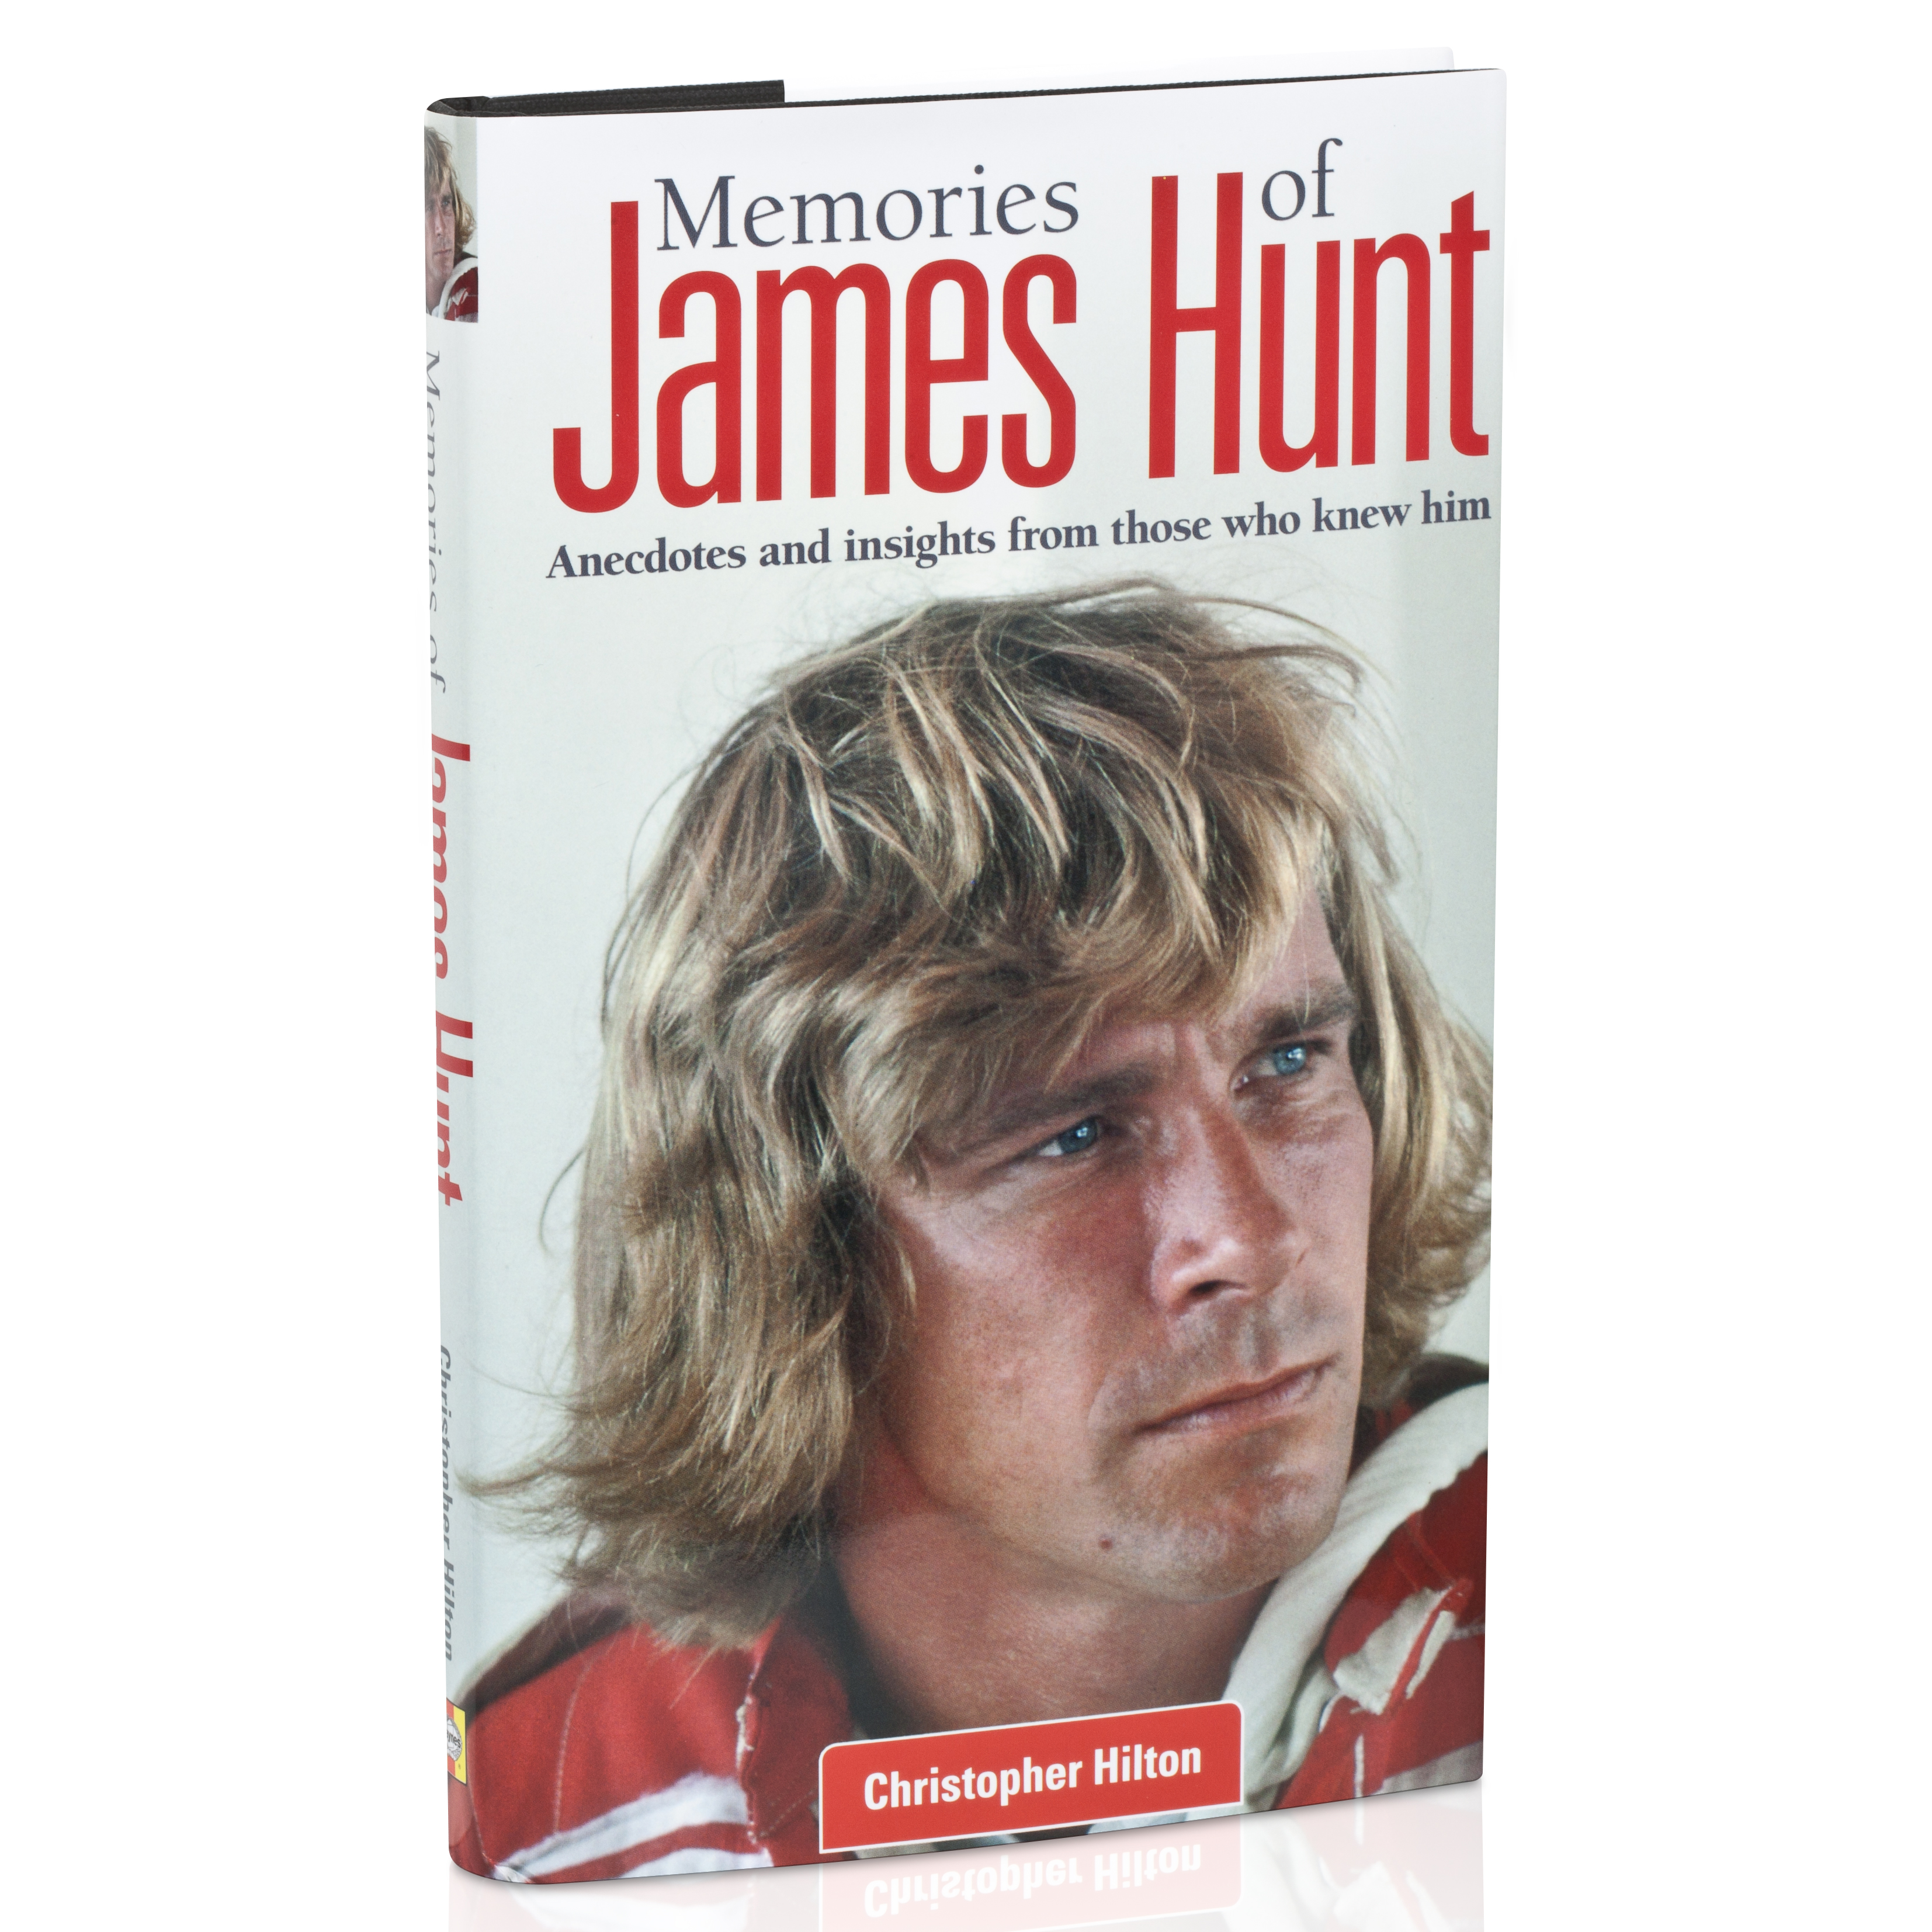 Formula One Memories of James Hunt